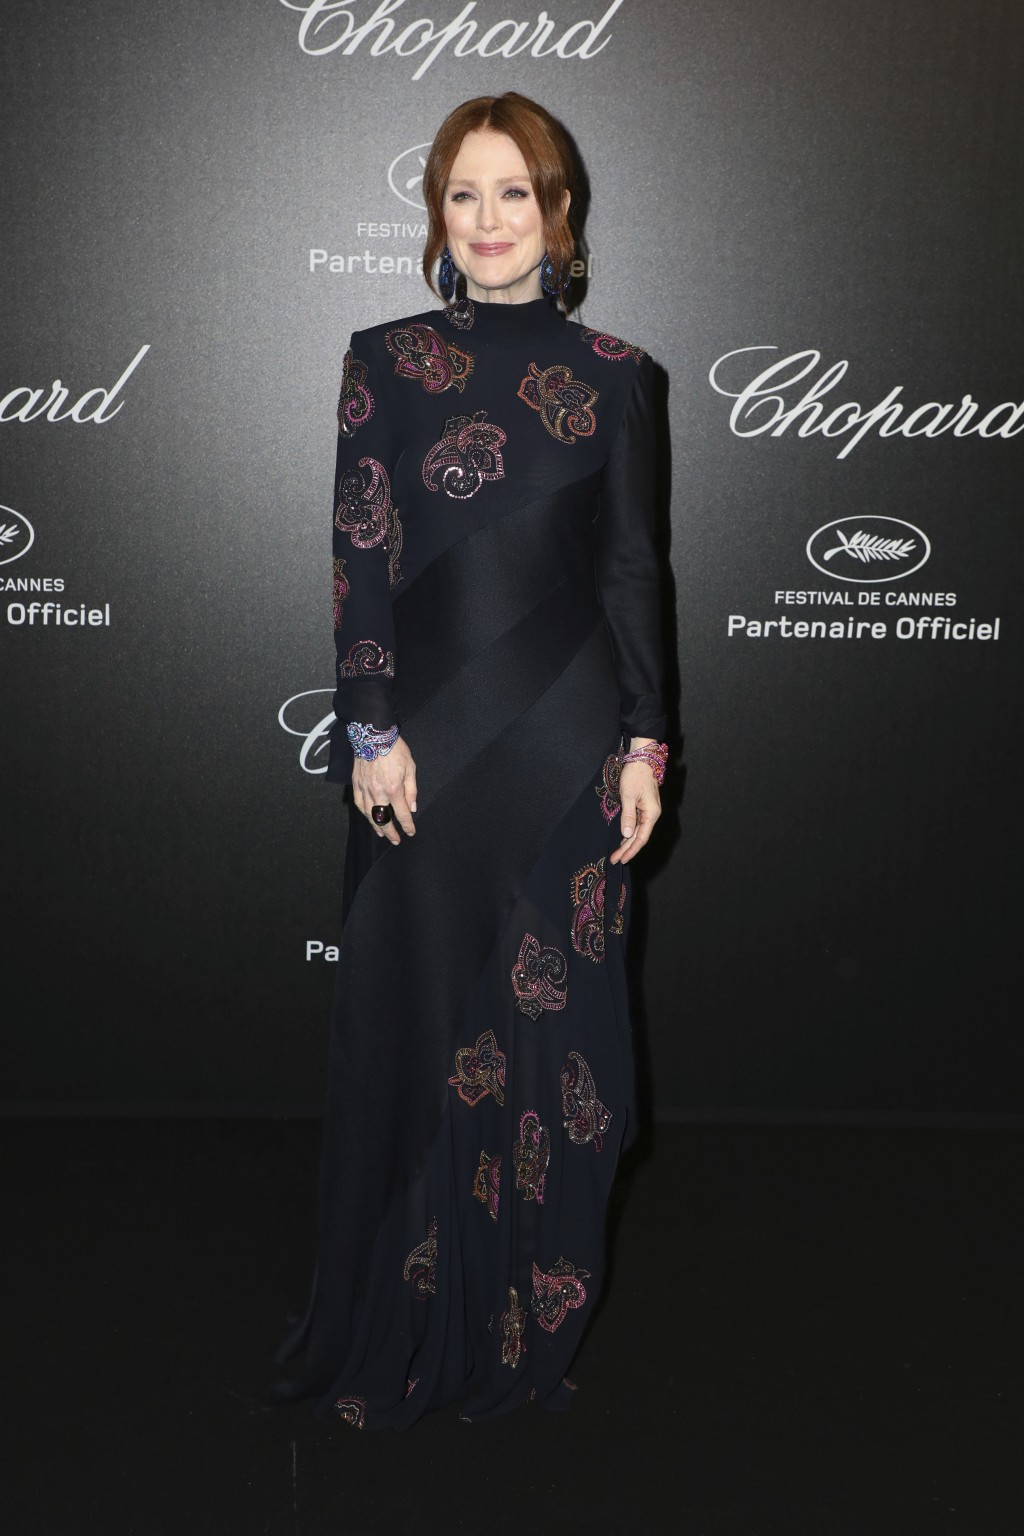 Actress Julianne Moore poses for photographers upon arrival at the Chopard Love event at the 72nd international film festival, Cannes, southern France